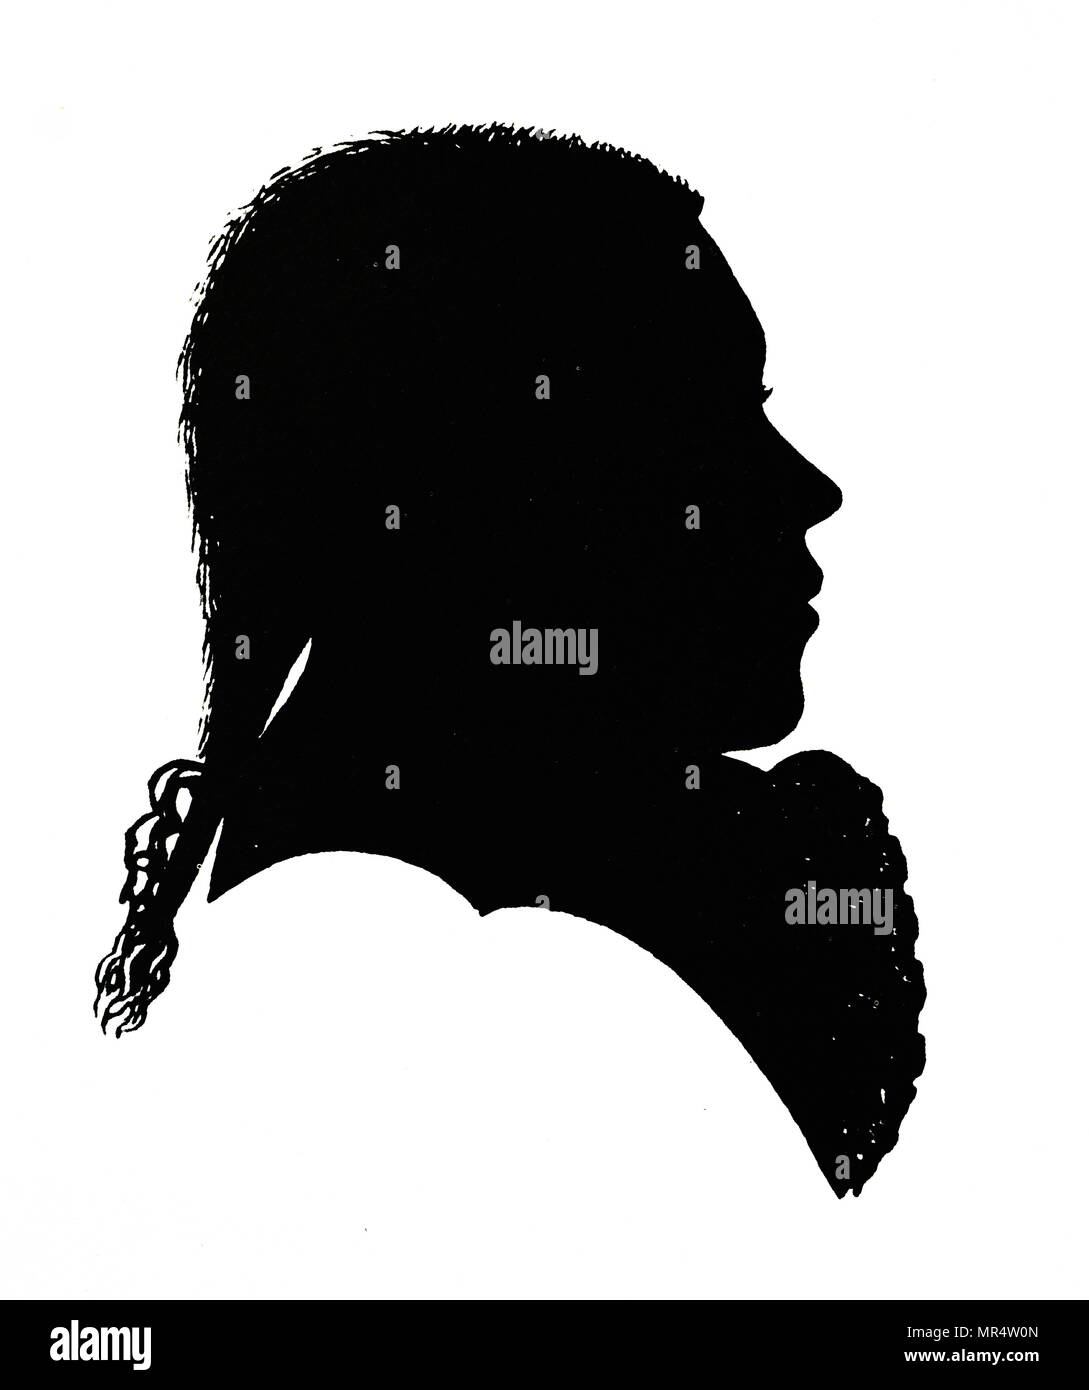 Silhouette of Ludwig van Beethoven (1770-1827) a German composer and pianist. Dated 18th century - Stock Image